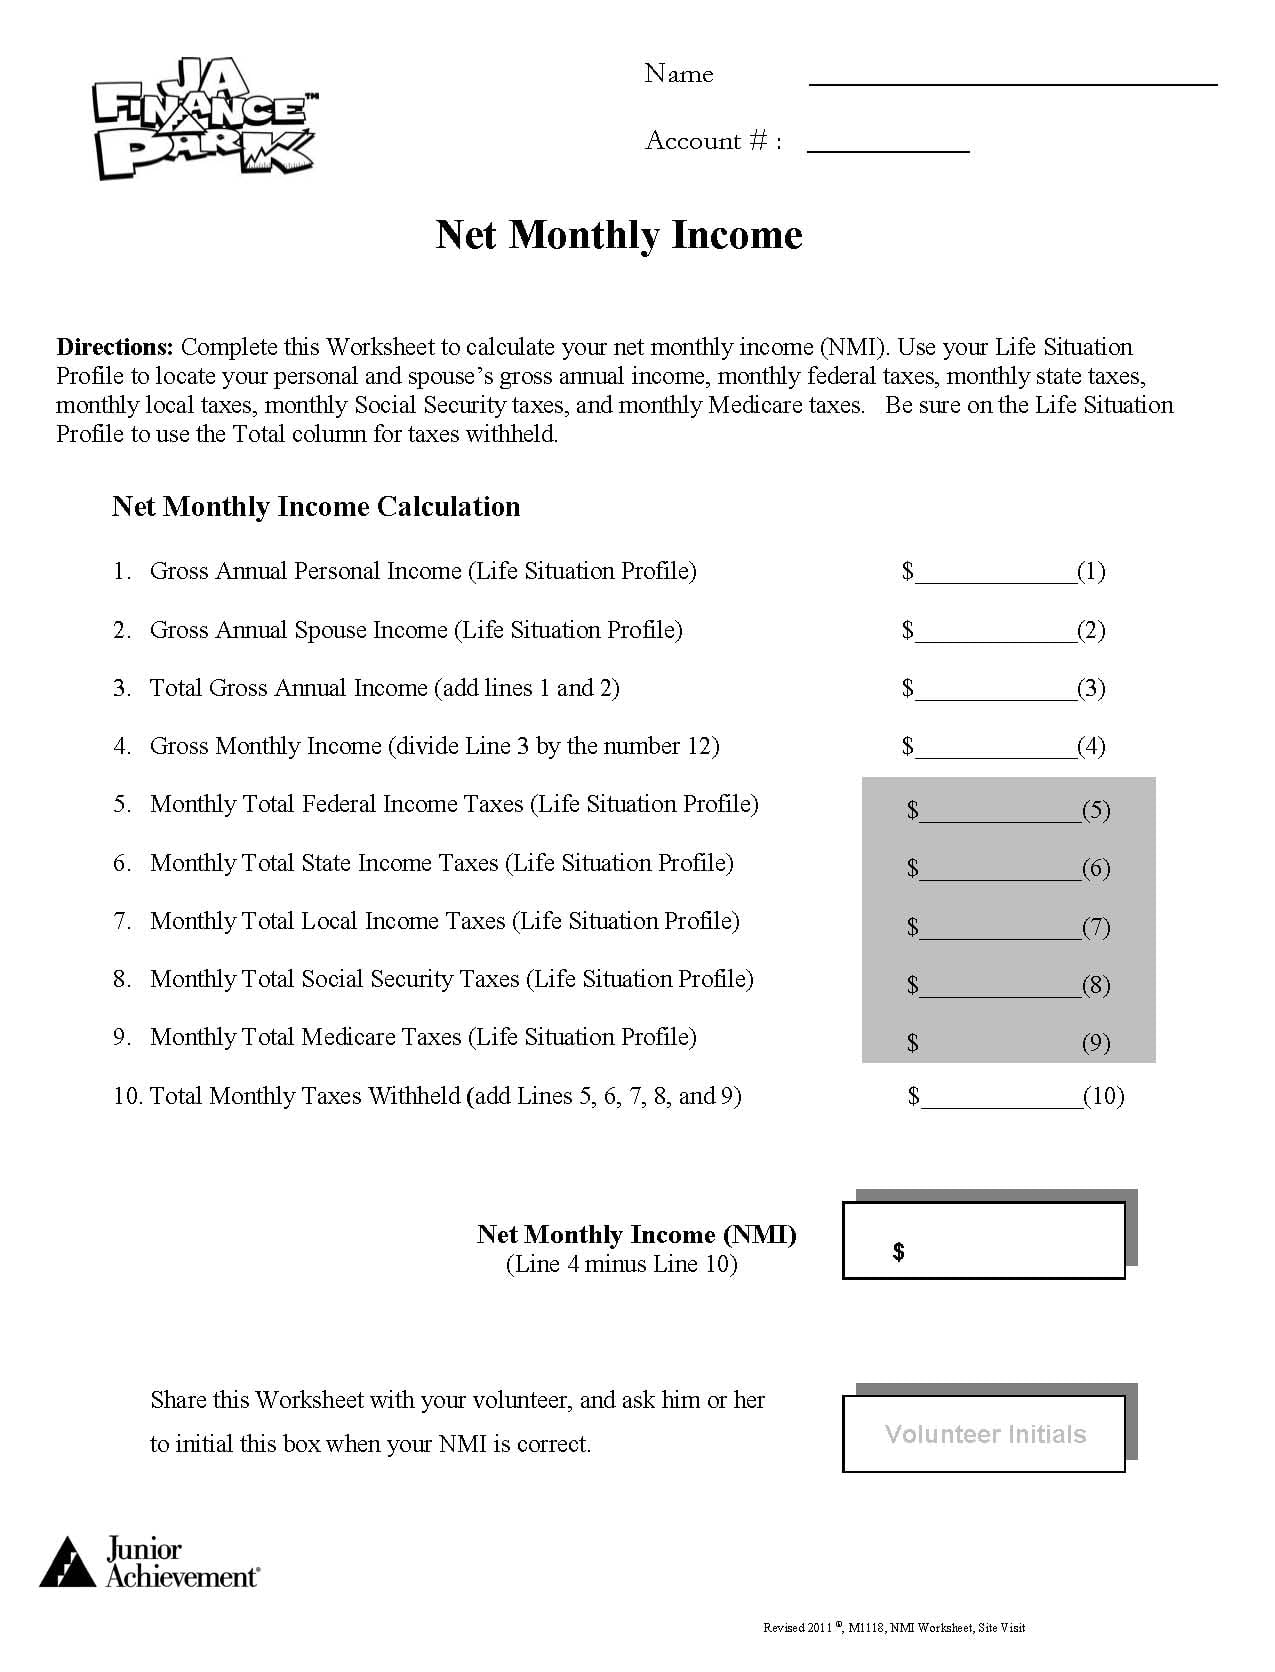 Worksheets Personal Finance Worksheets For High School personal finance worksheets for highschool students ie worksheet financial planning high school budgeting